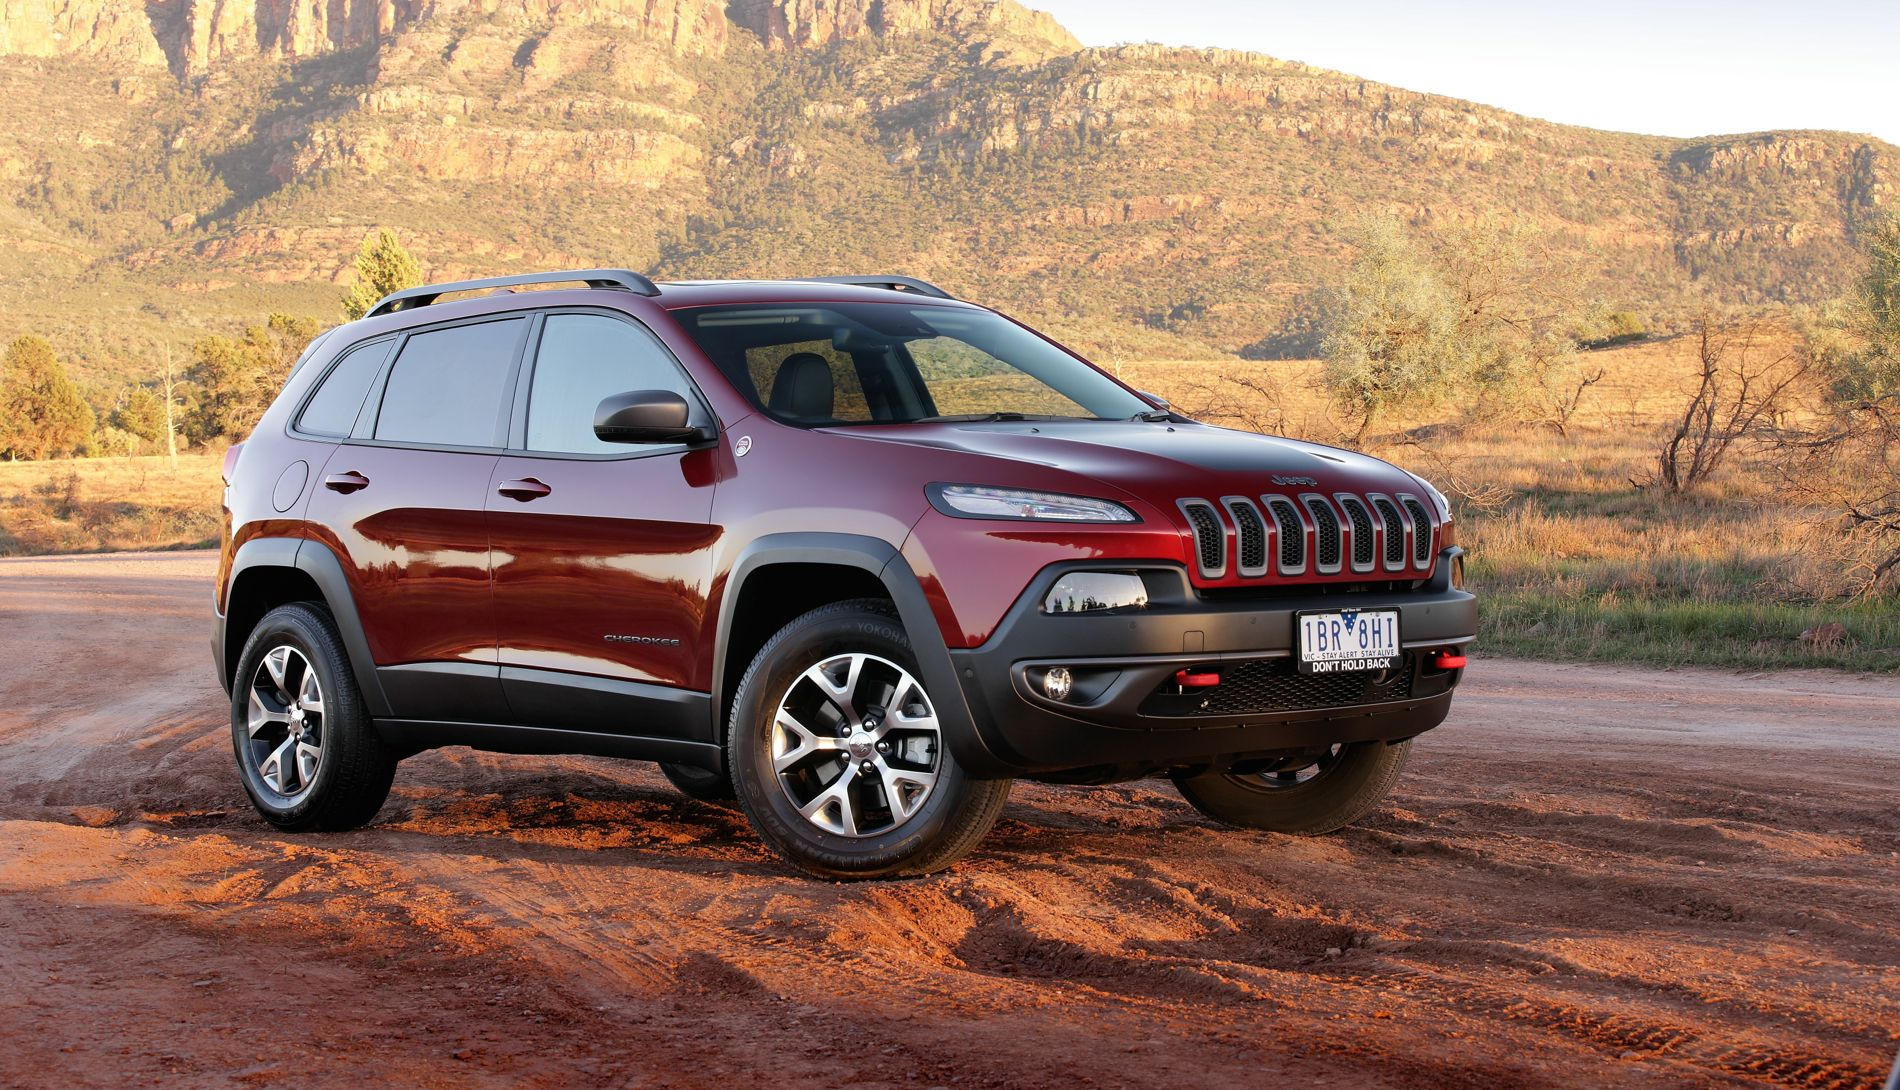 2014 Jeep Cherokee Trailhawk Review: Off-road